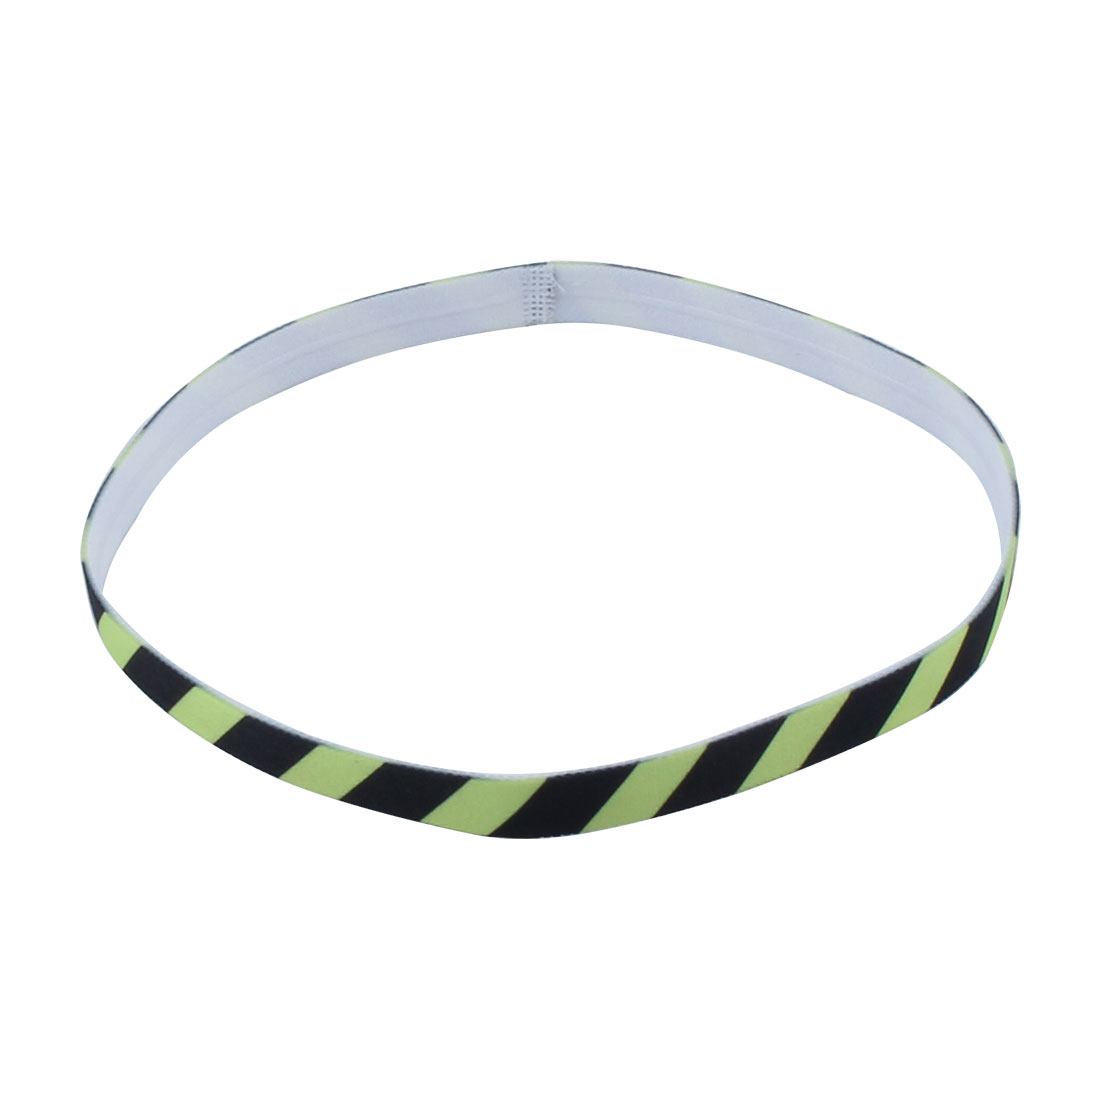 Exercise Silicone Flower Printed Non-slip Strech Sports Headband Fluorescent Green Black